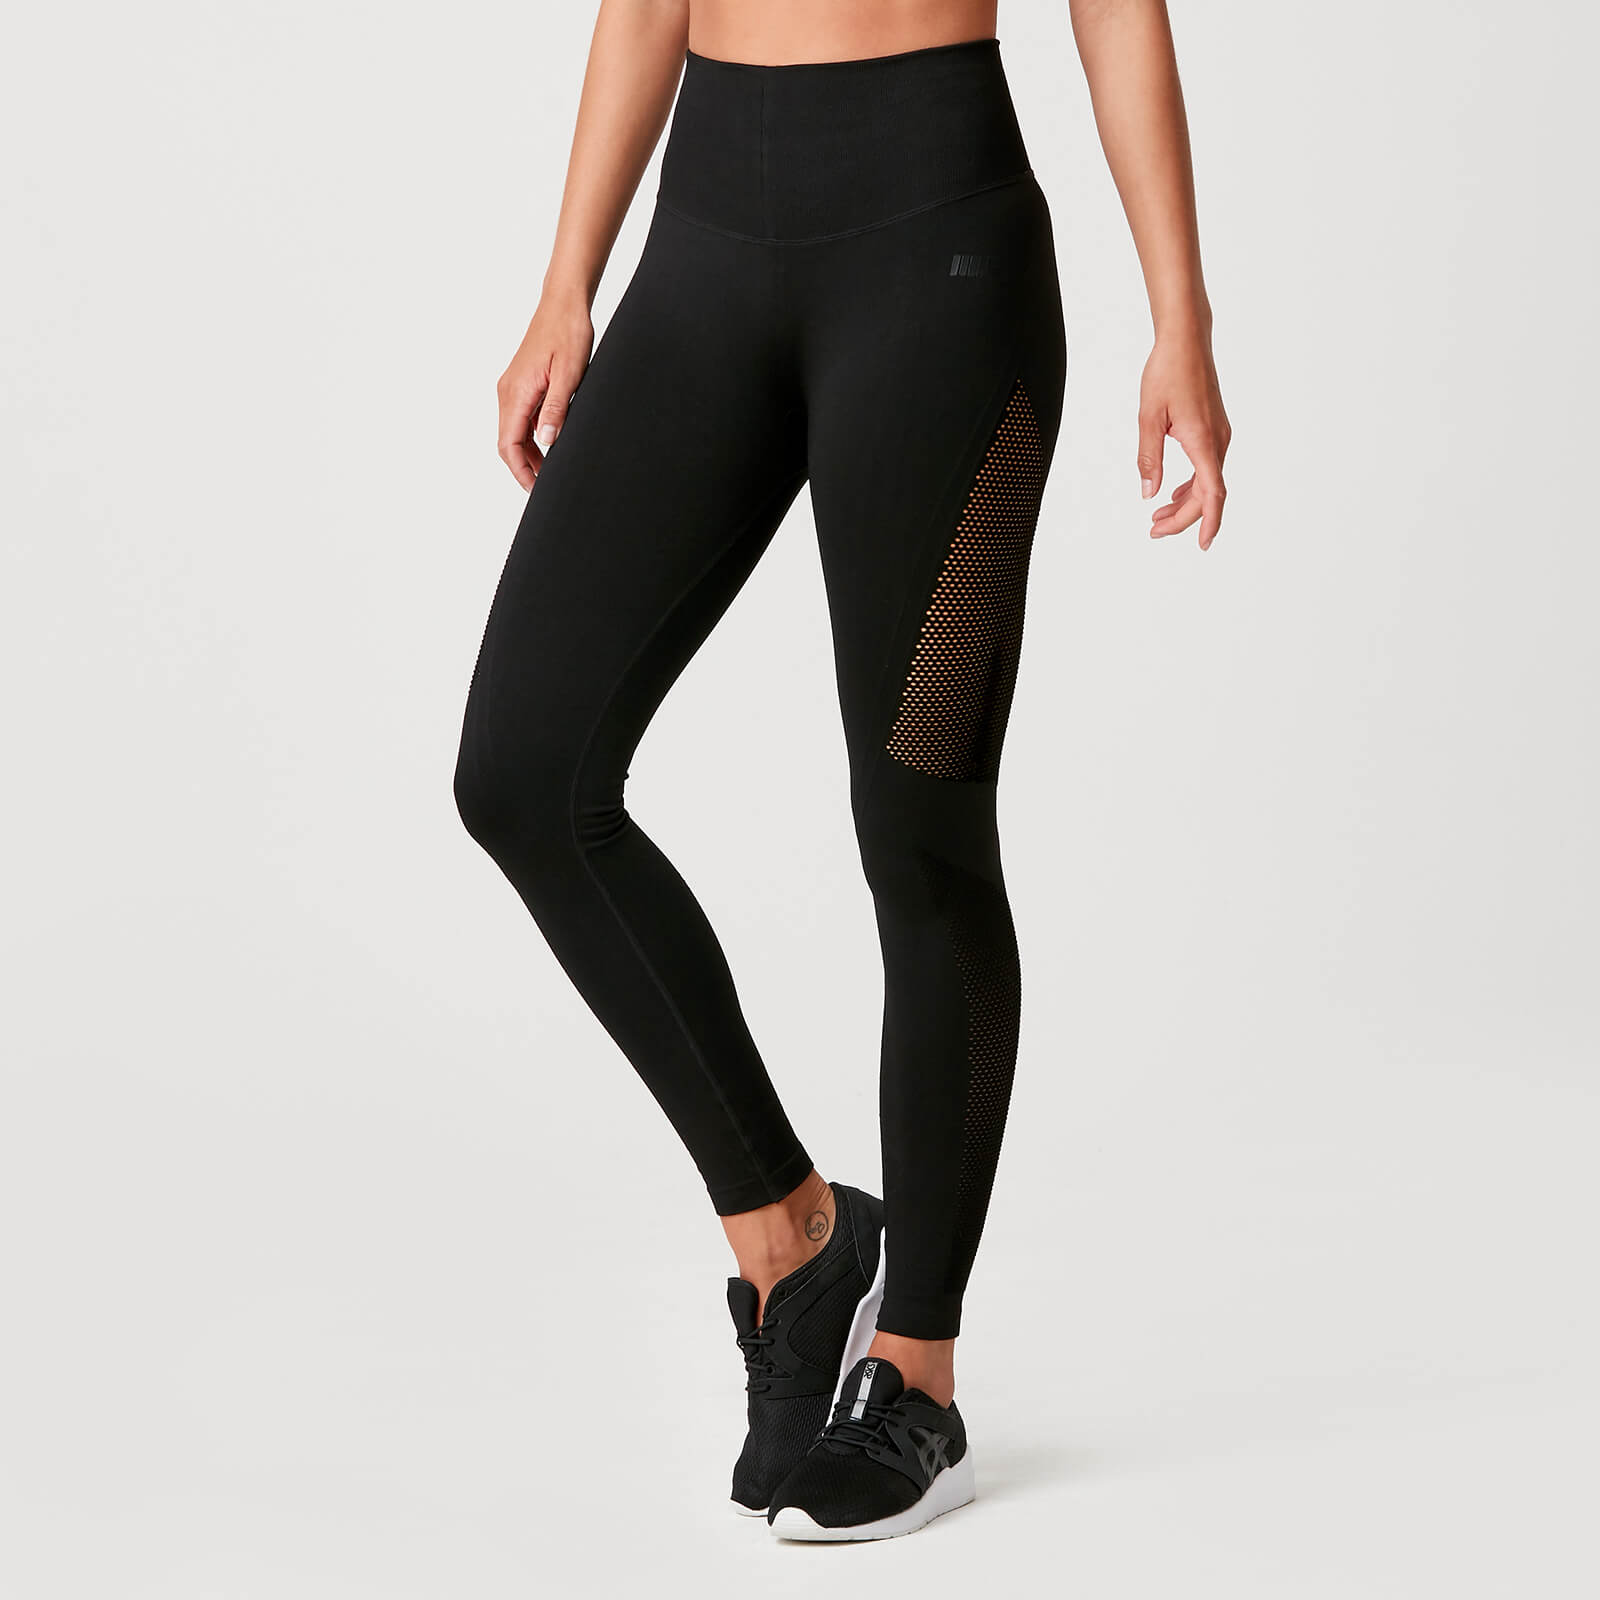 Luxe Seamless Leggings - Black - S